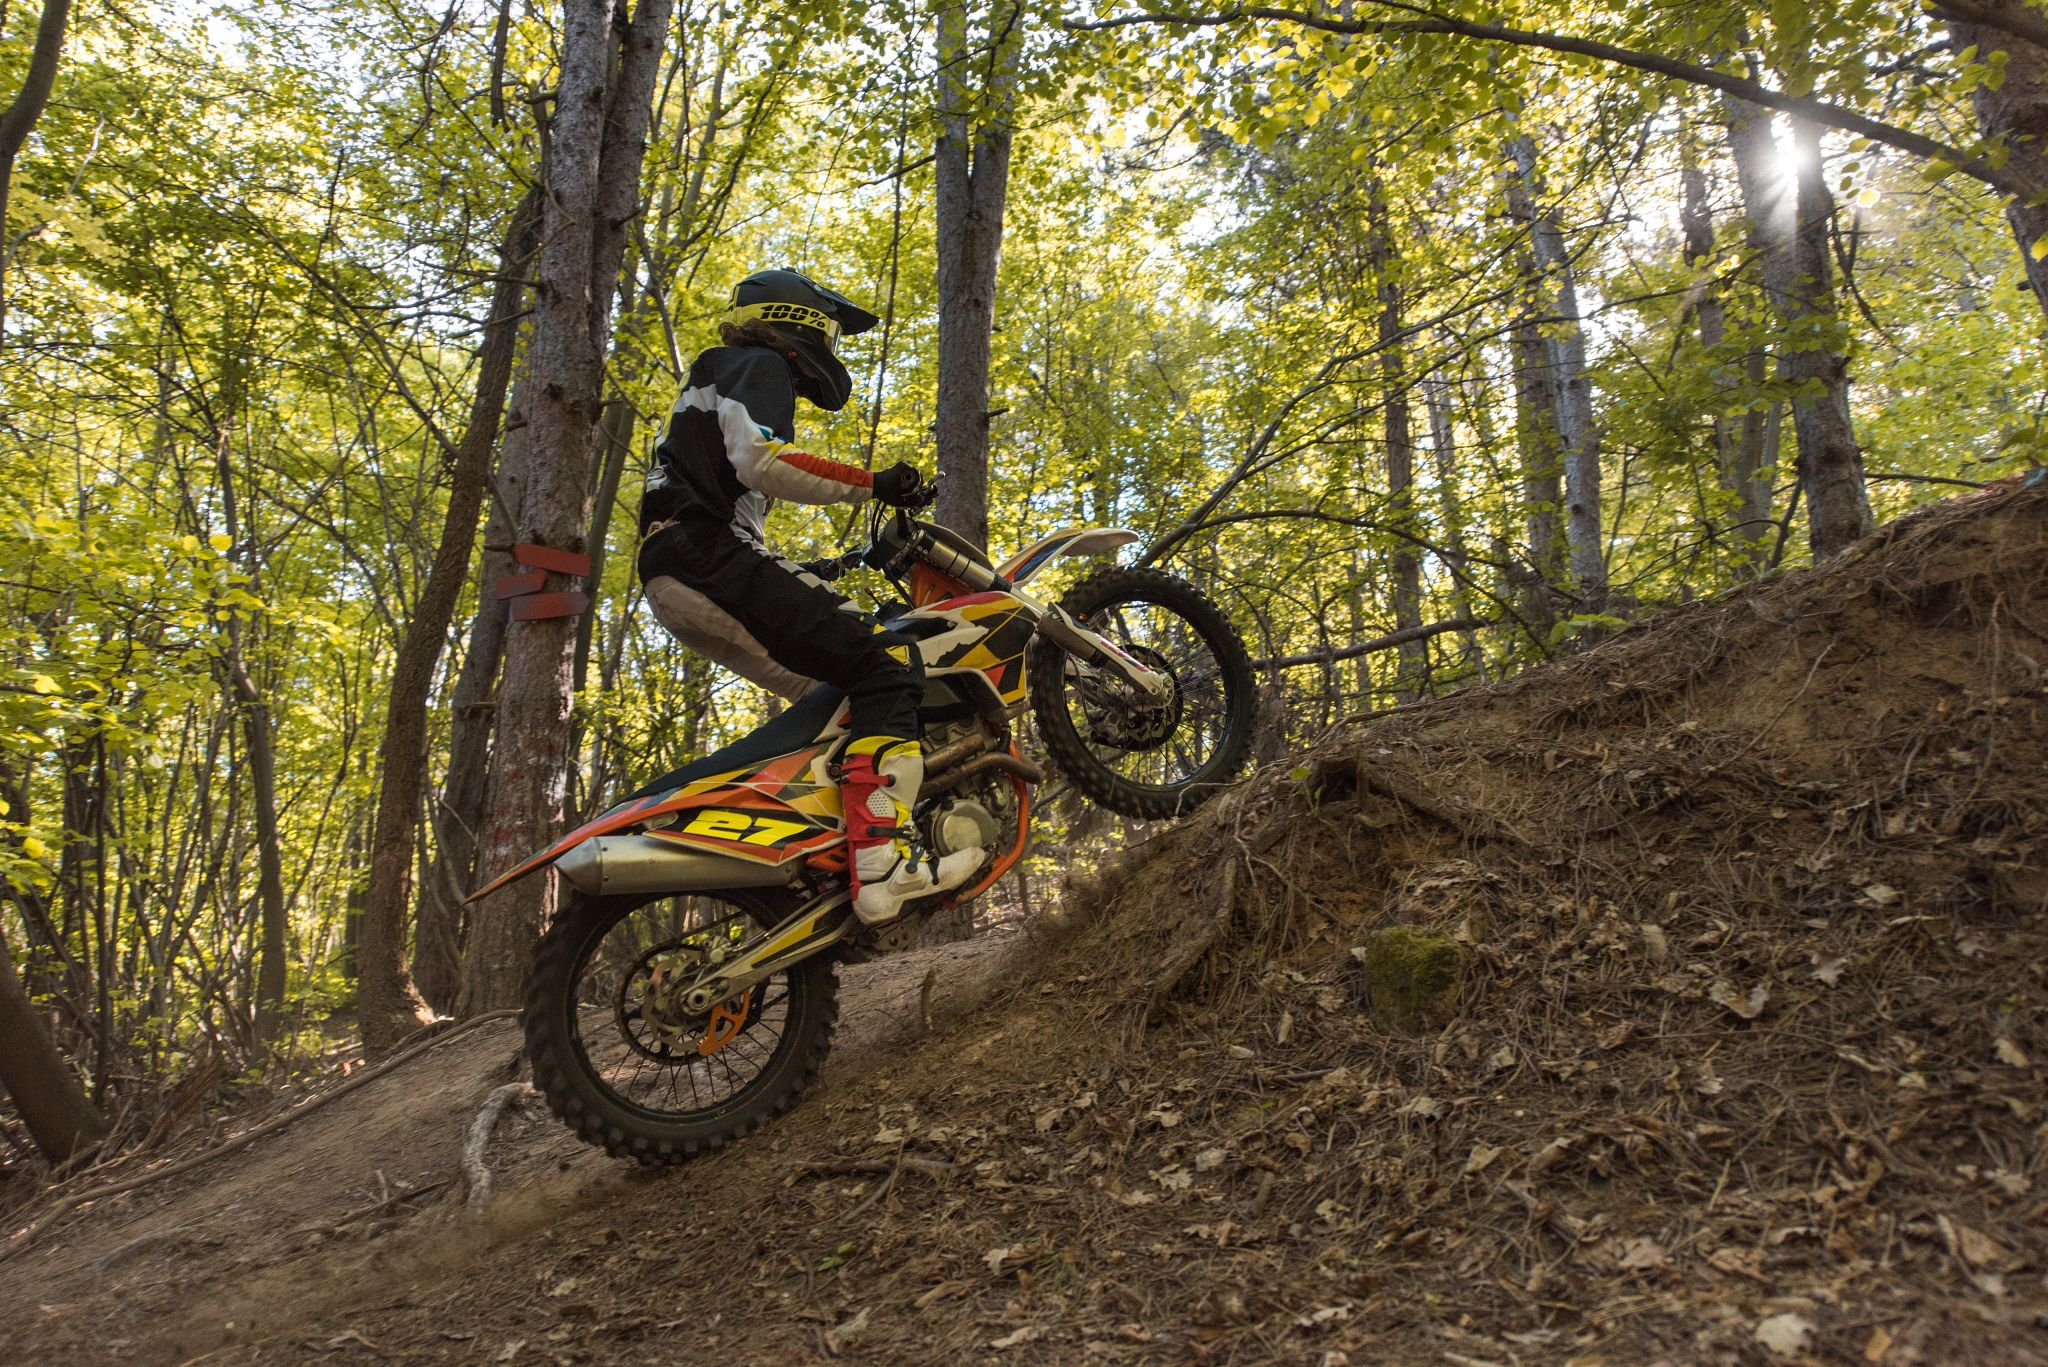 An image of a person riding on a dirt bike in the forest.